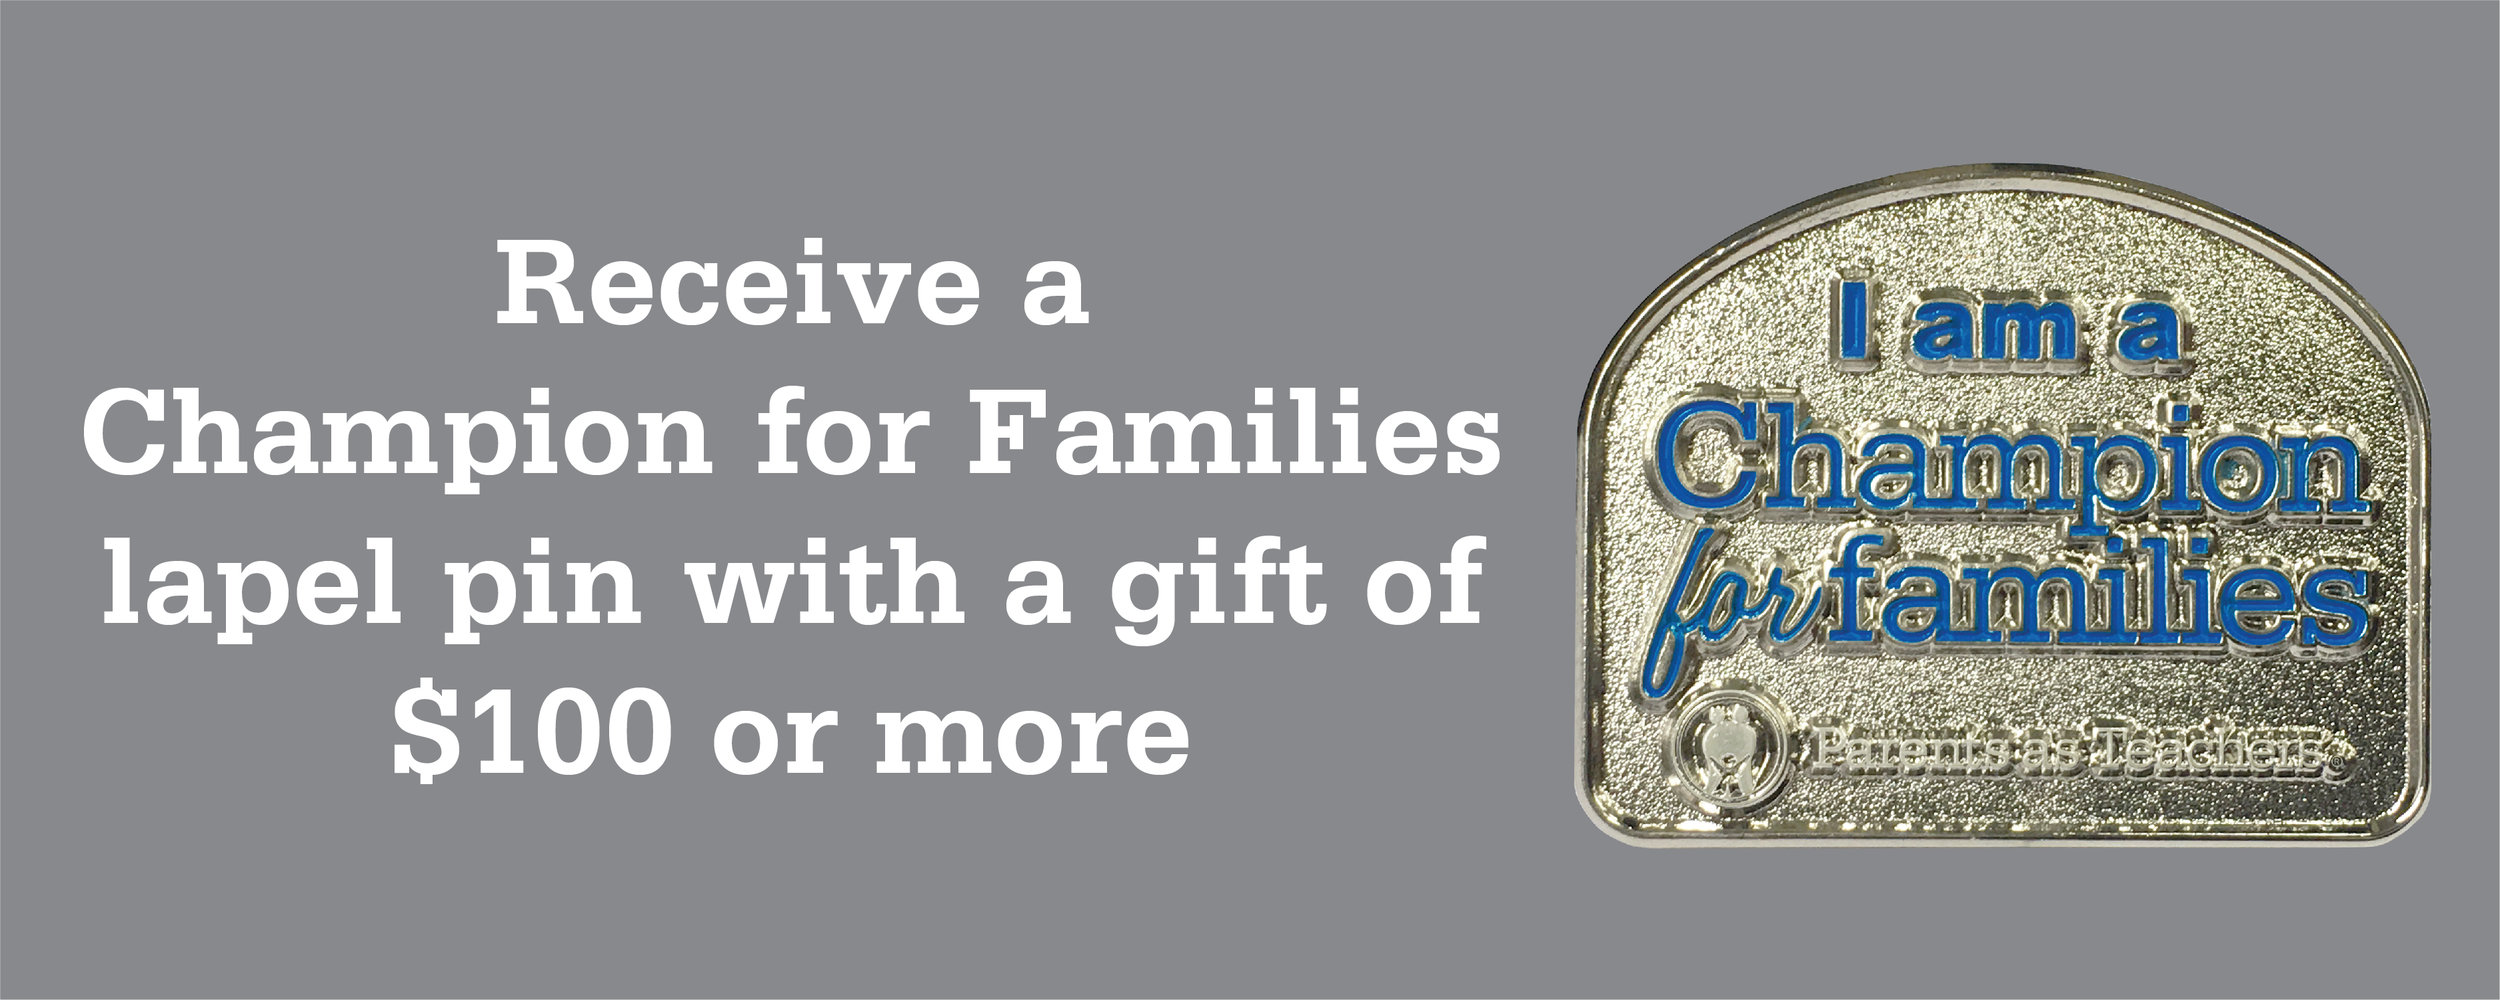 Make a minimum gift of $100 and you will receive a Champion for Families lapel pin.